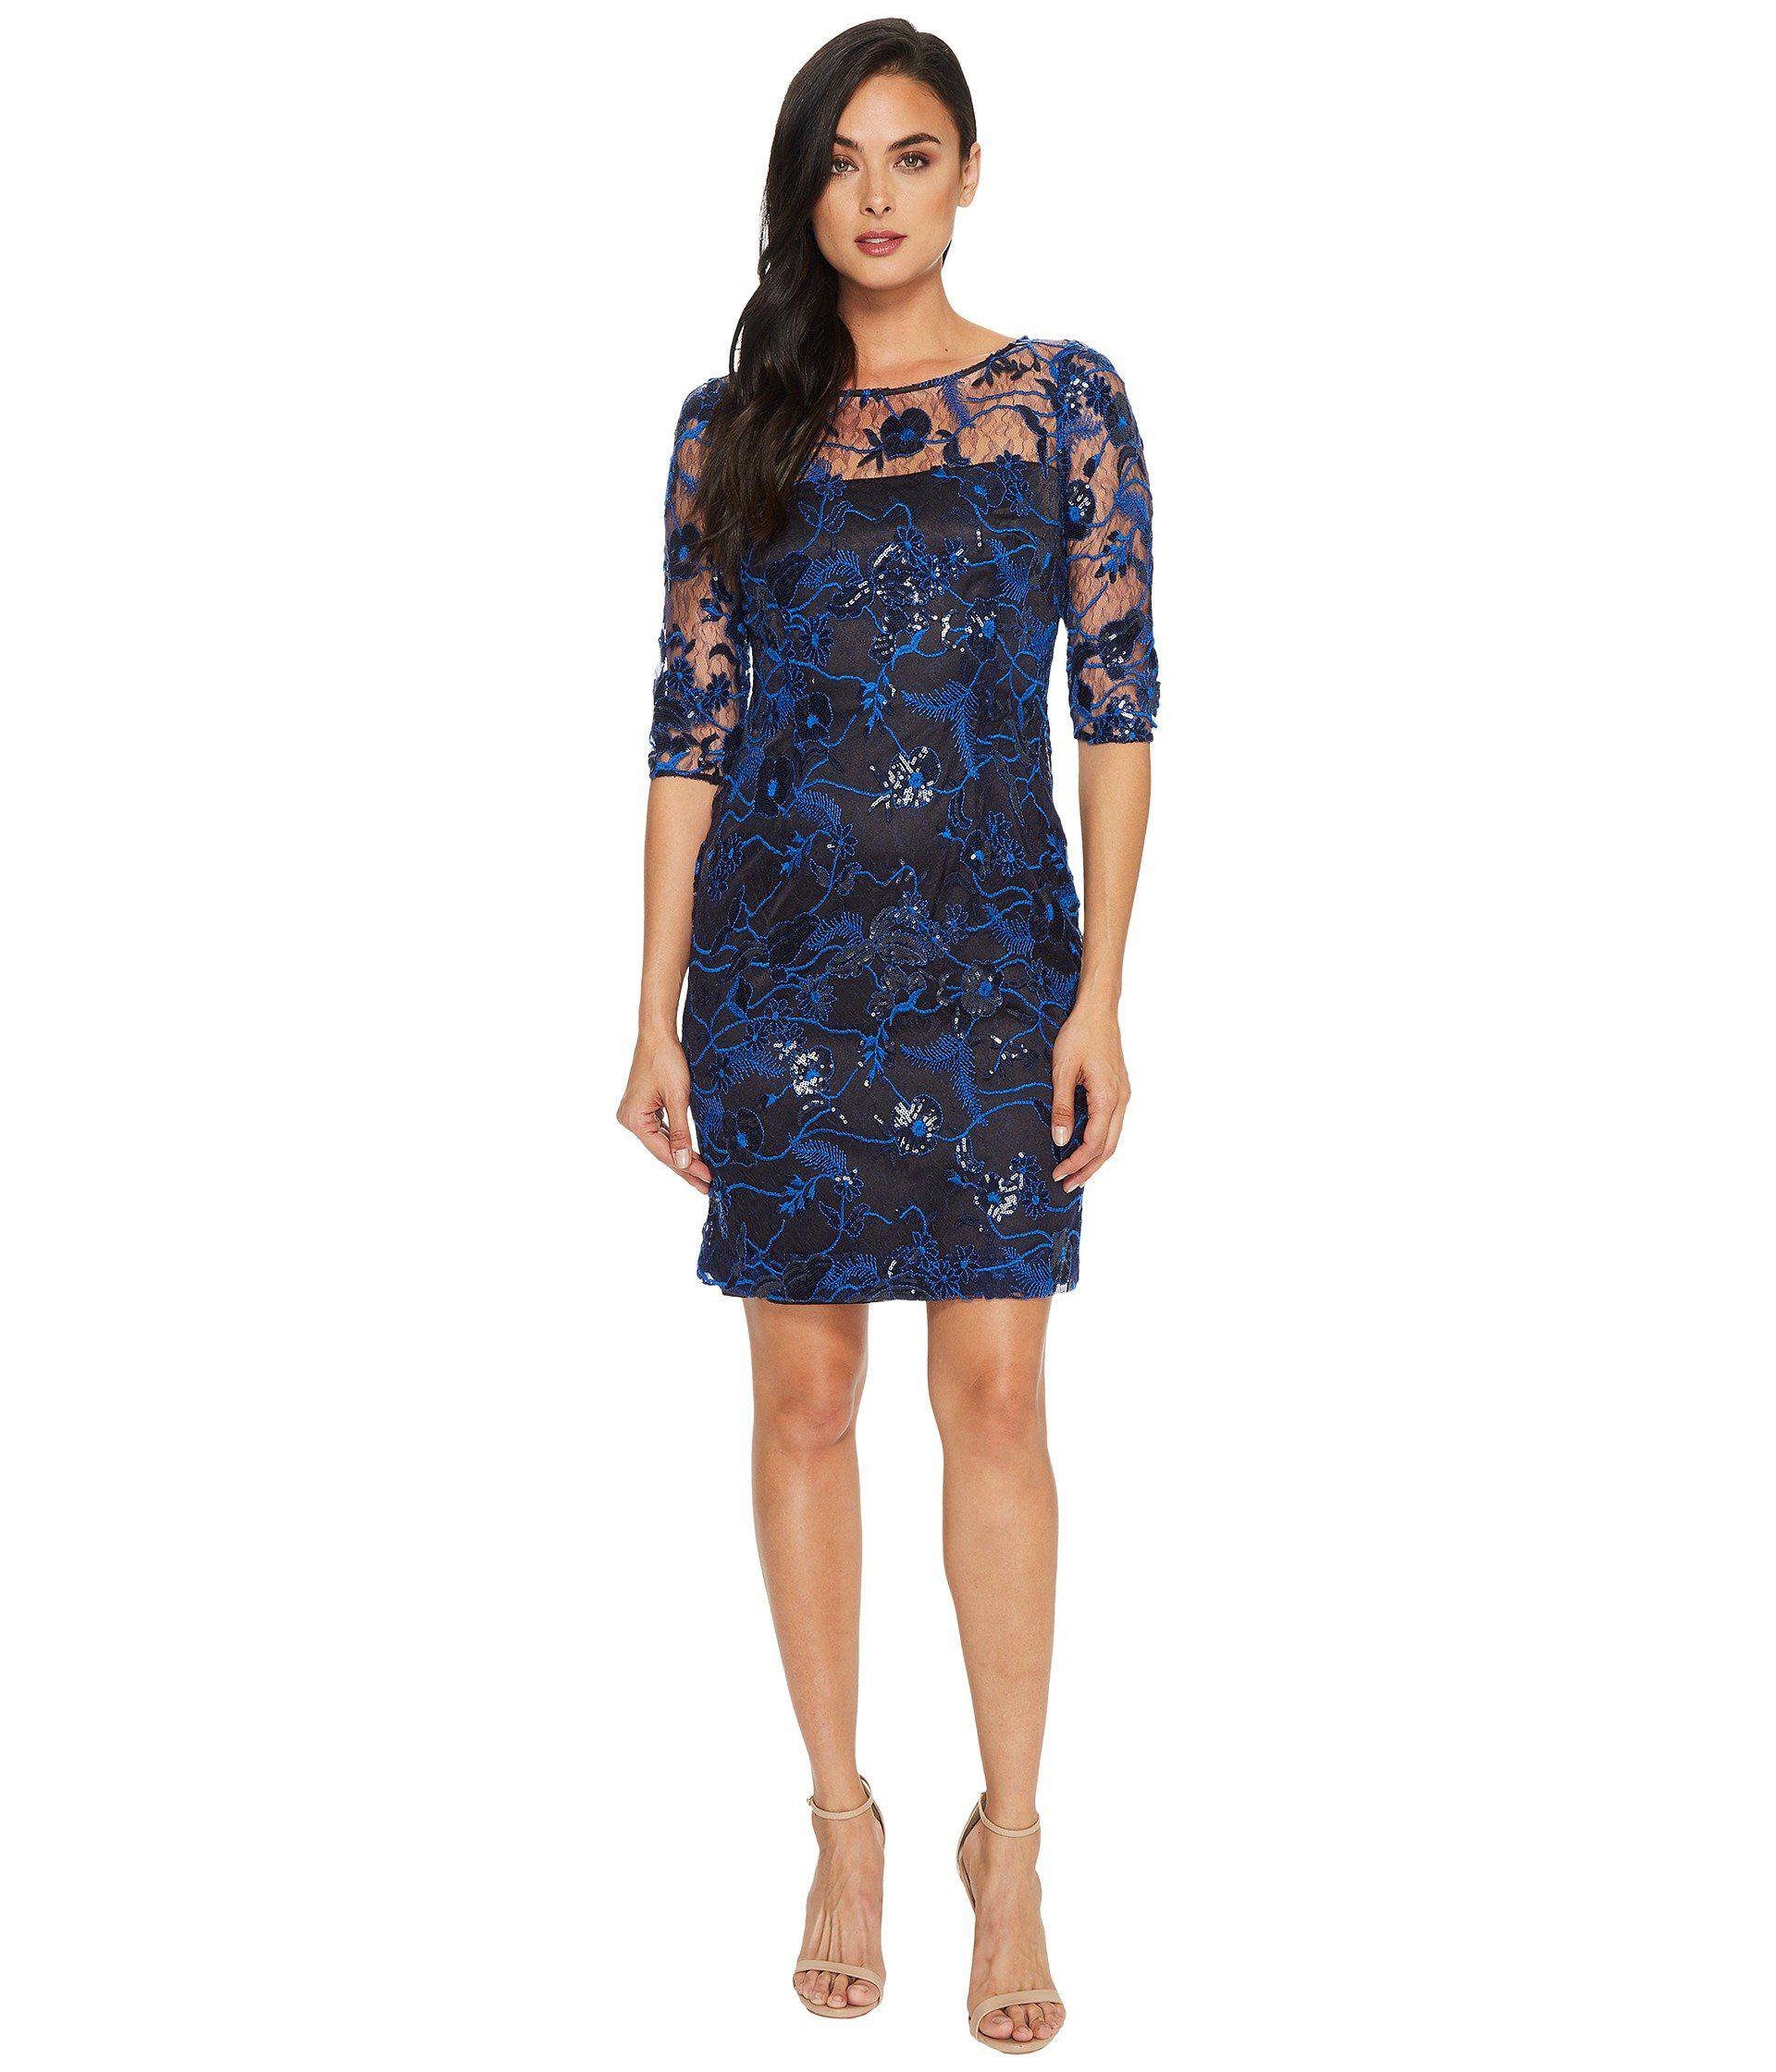 4f57803c7bf76 Lyst - Tahari Embroidered Mesh Sheath Dress in Blue - Save 44%